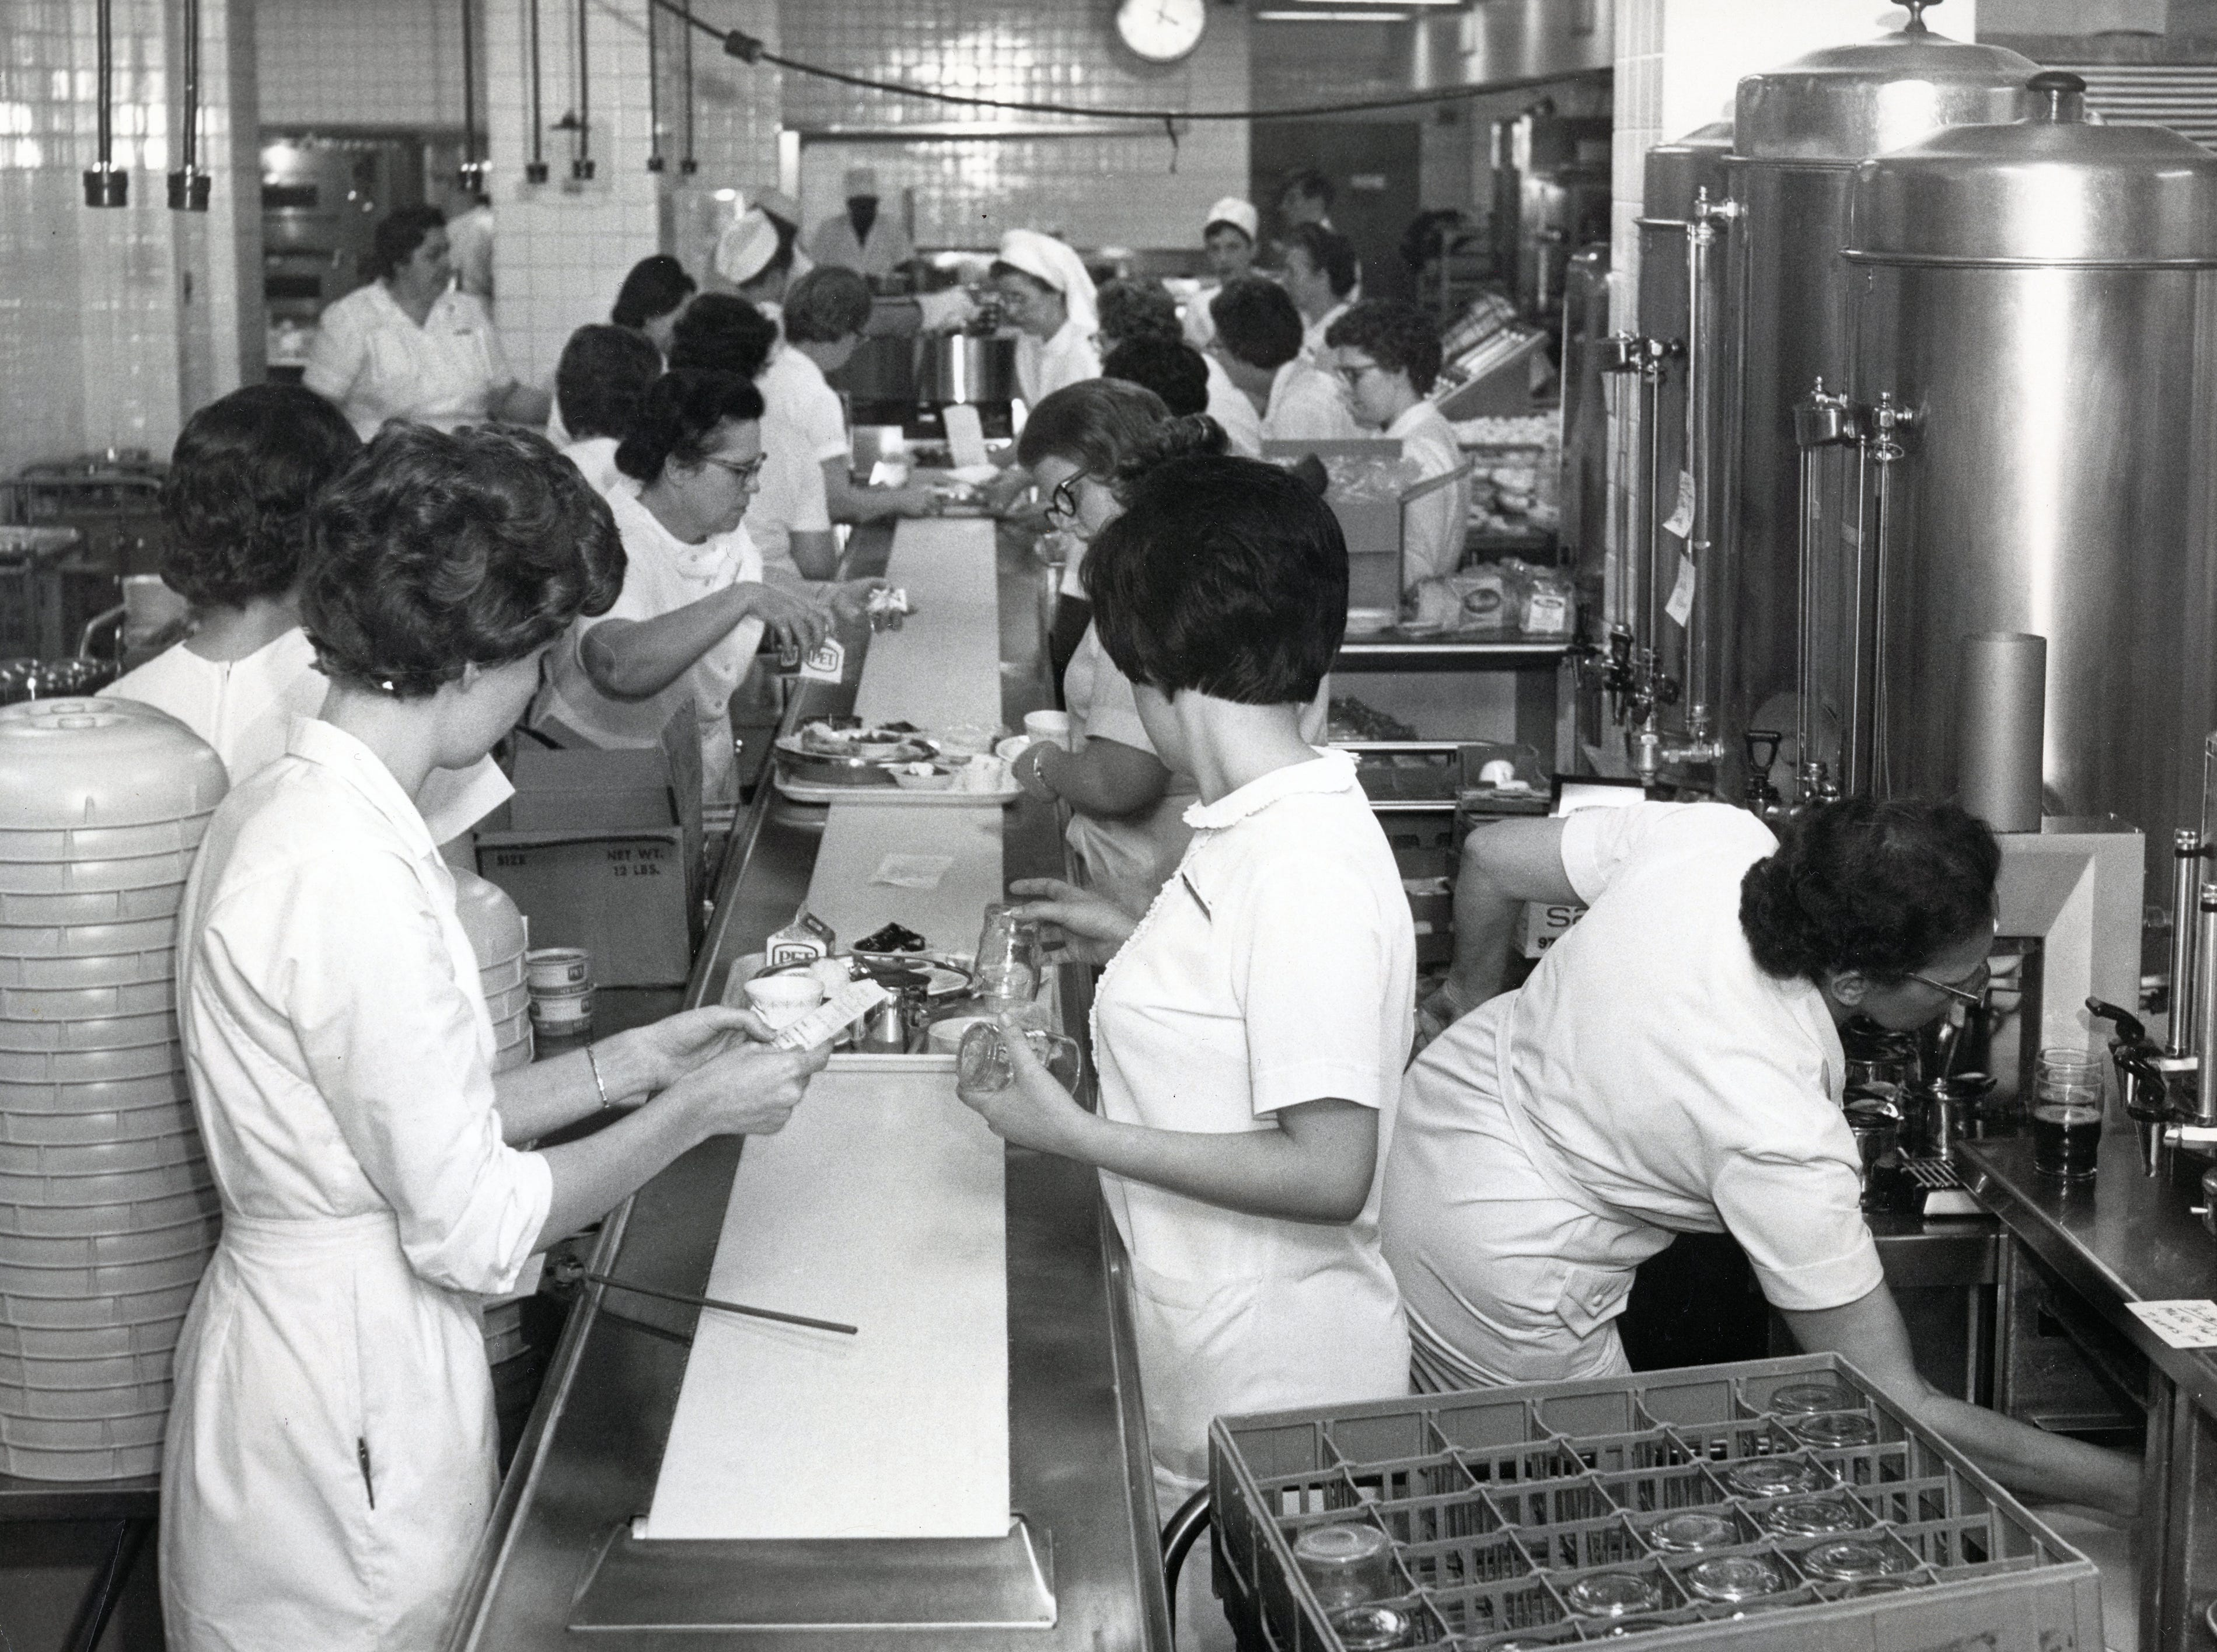 St. Mary's food assembly in January 1967.